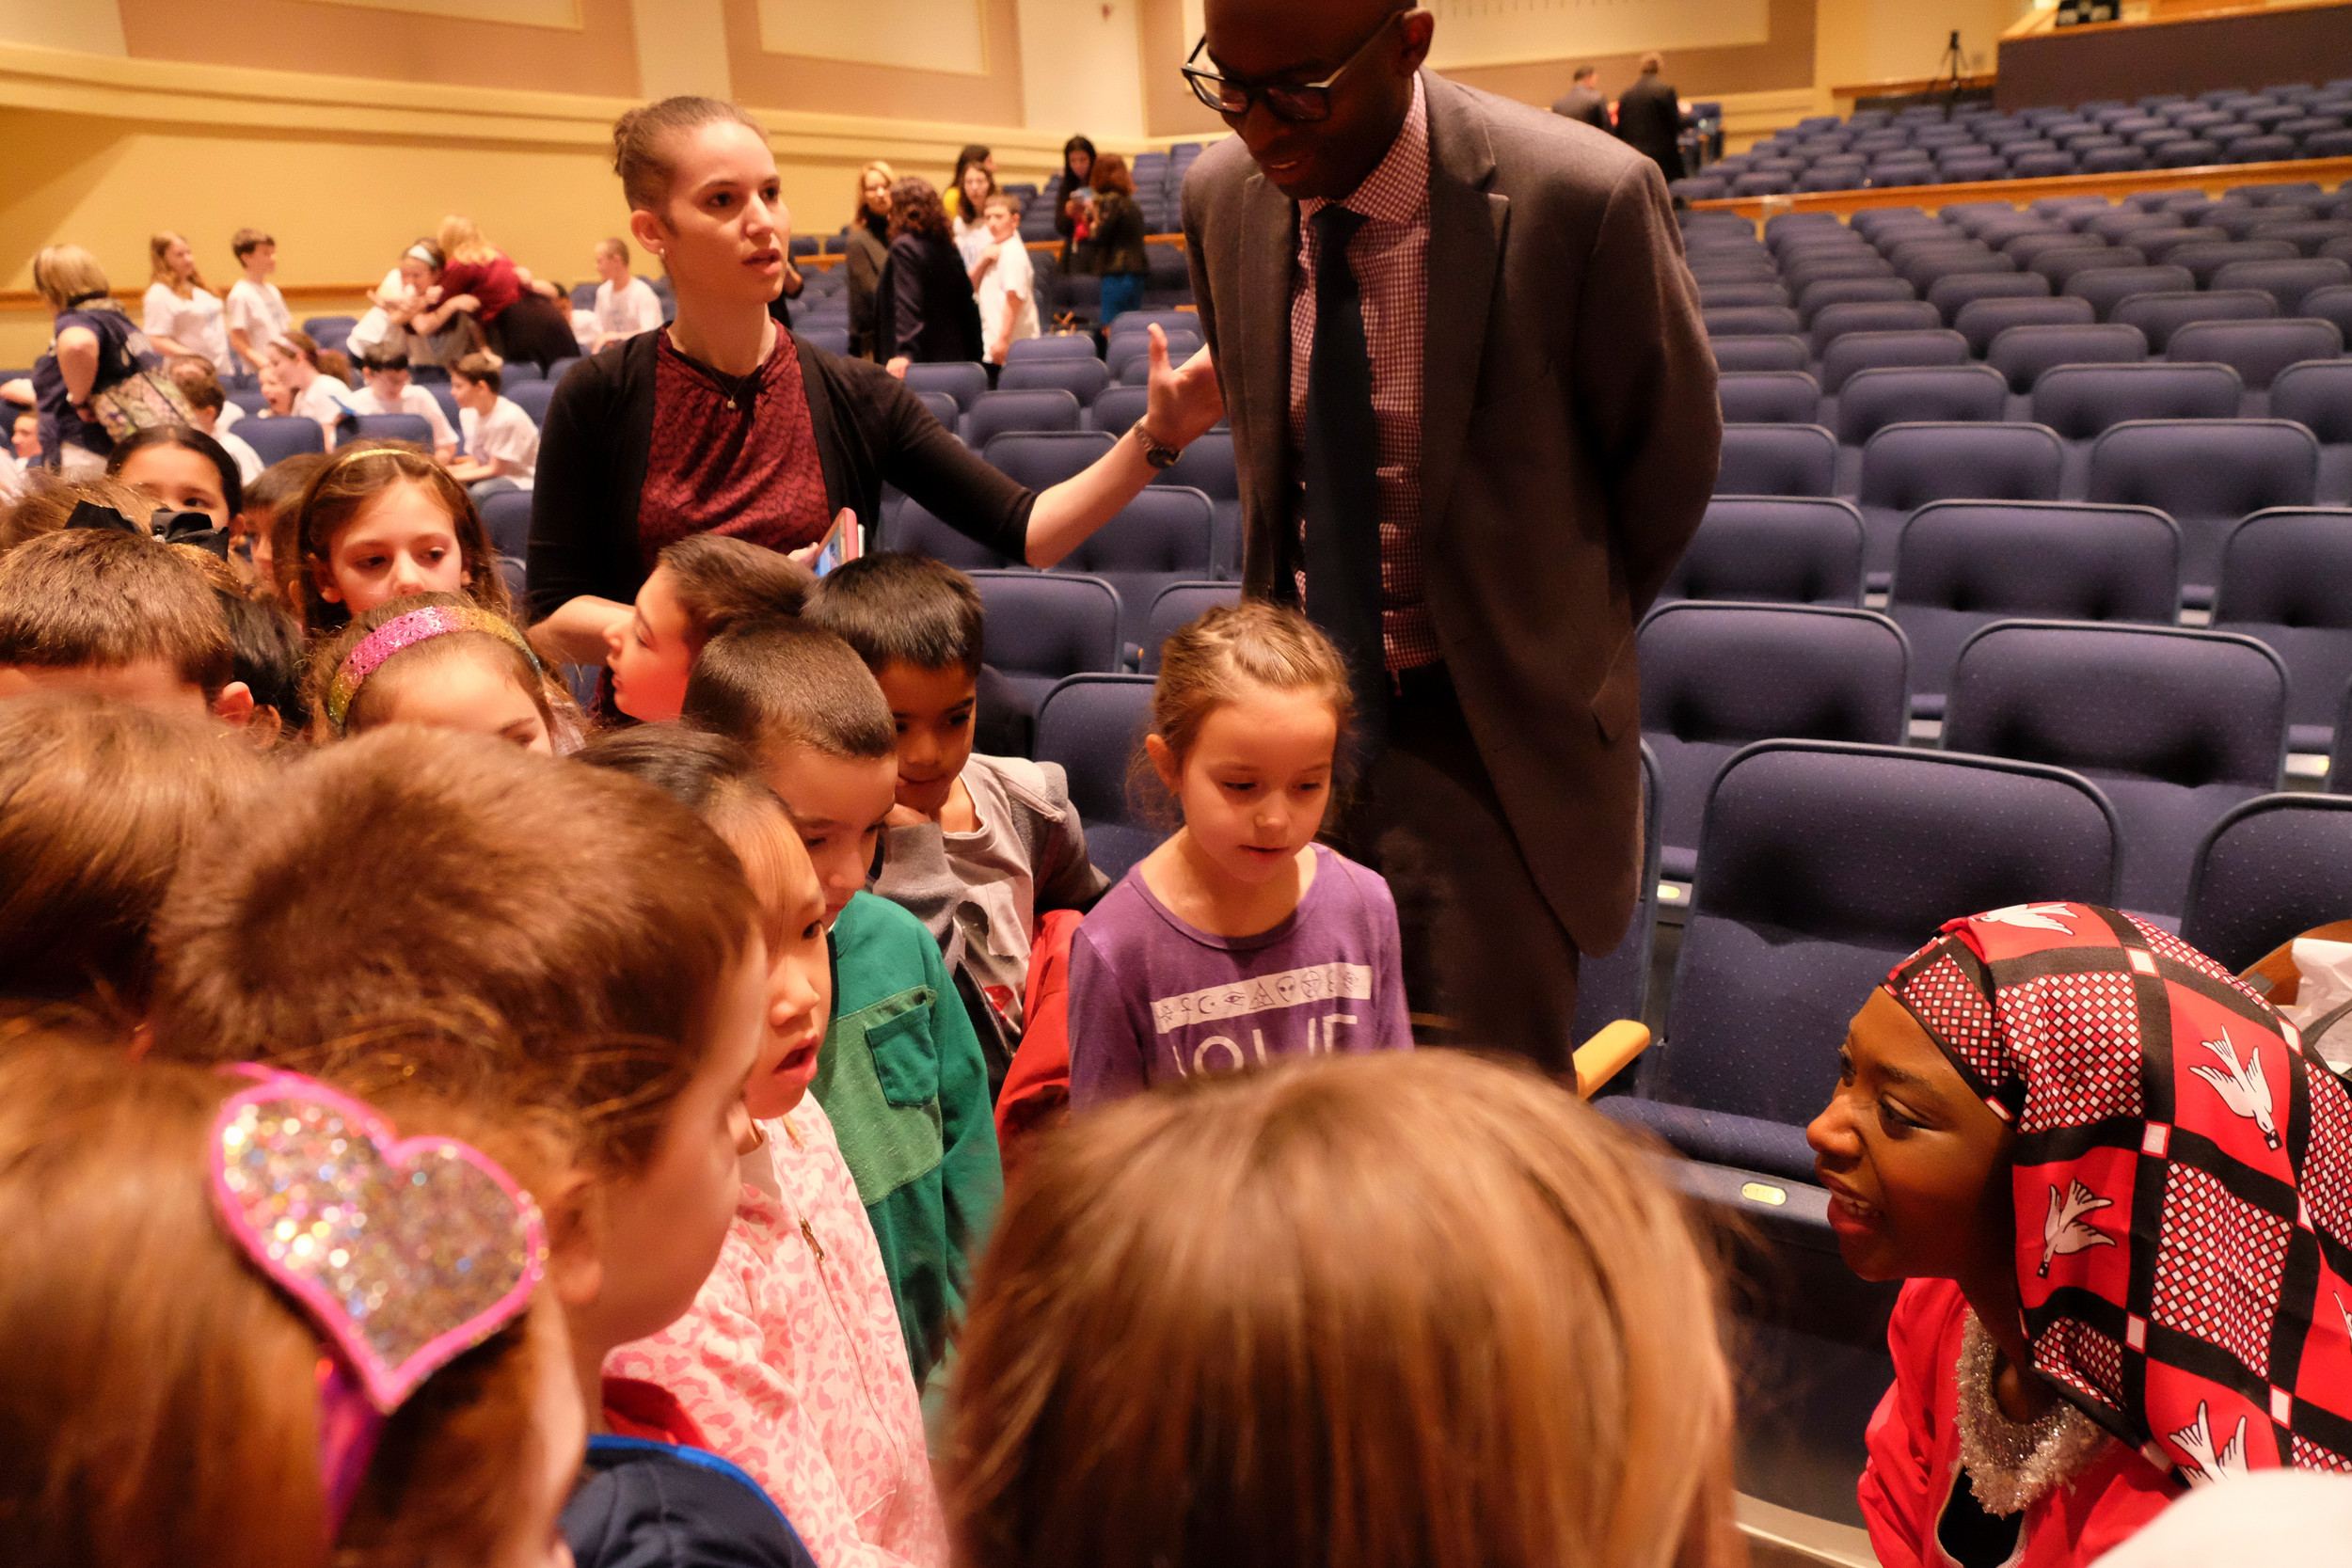 Georgie Badiel, spoke with second graders from School No. 9E while Principal Josh McPherson looks on. WIC advisor Danielle Block is standing to the left of Mr. McPherson